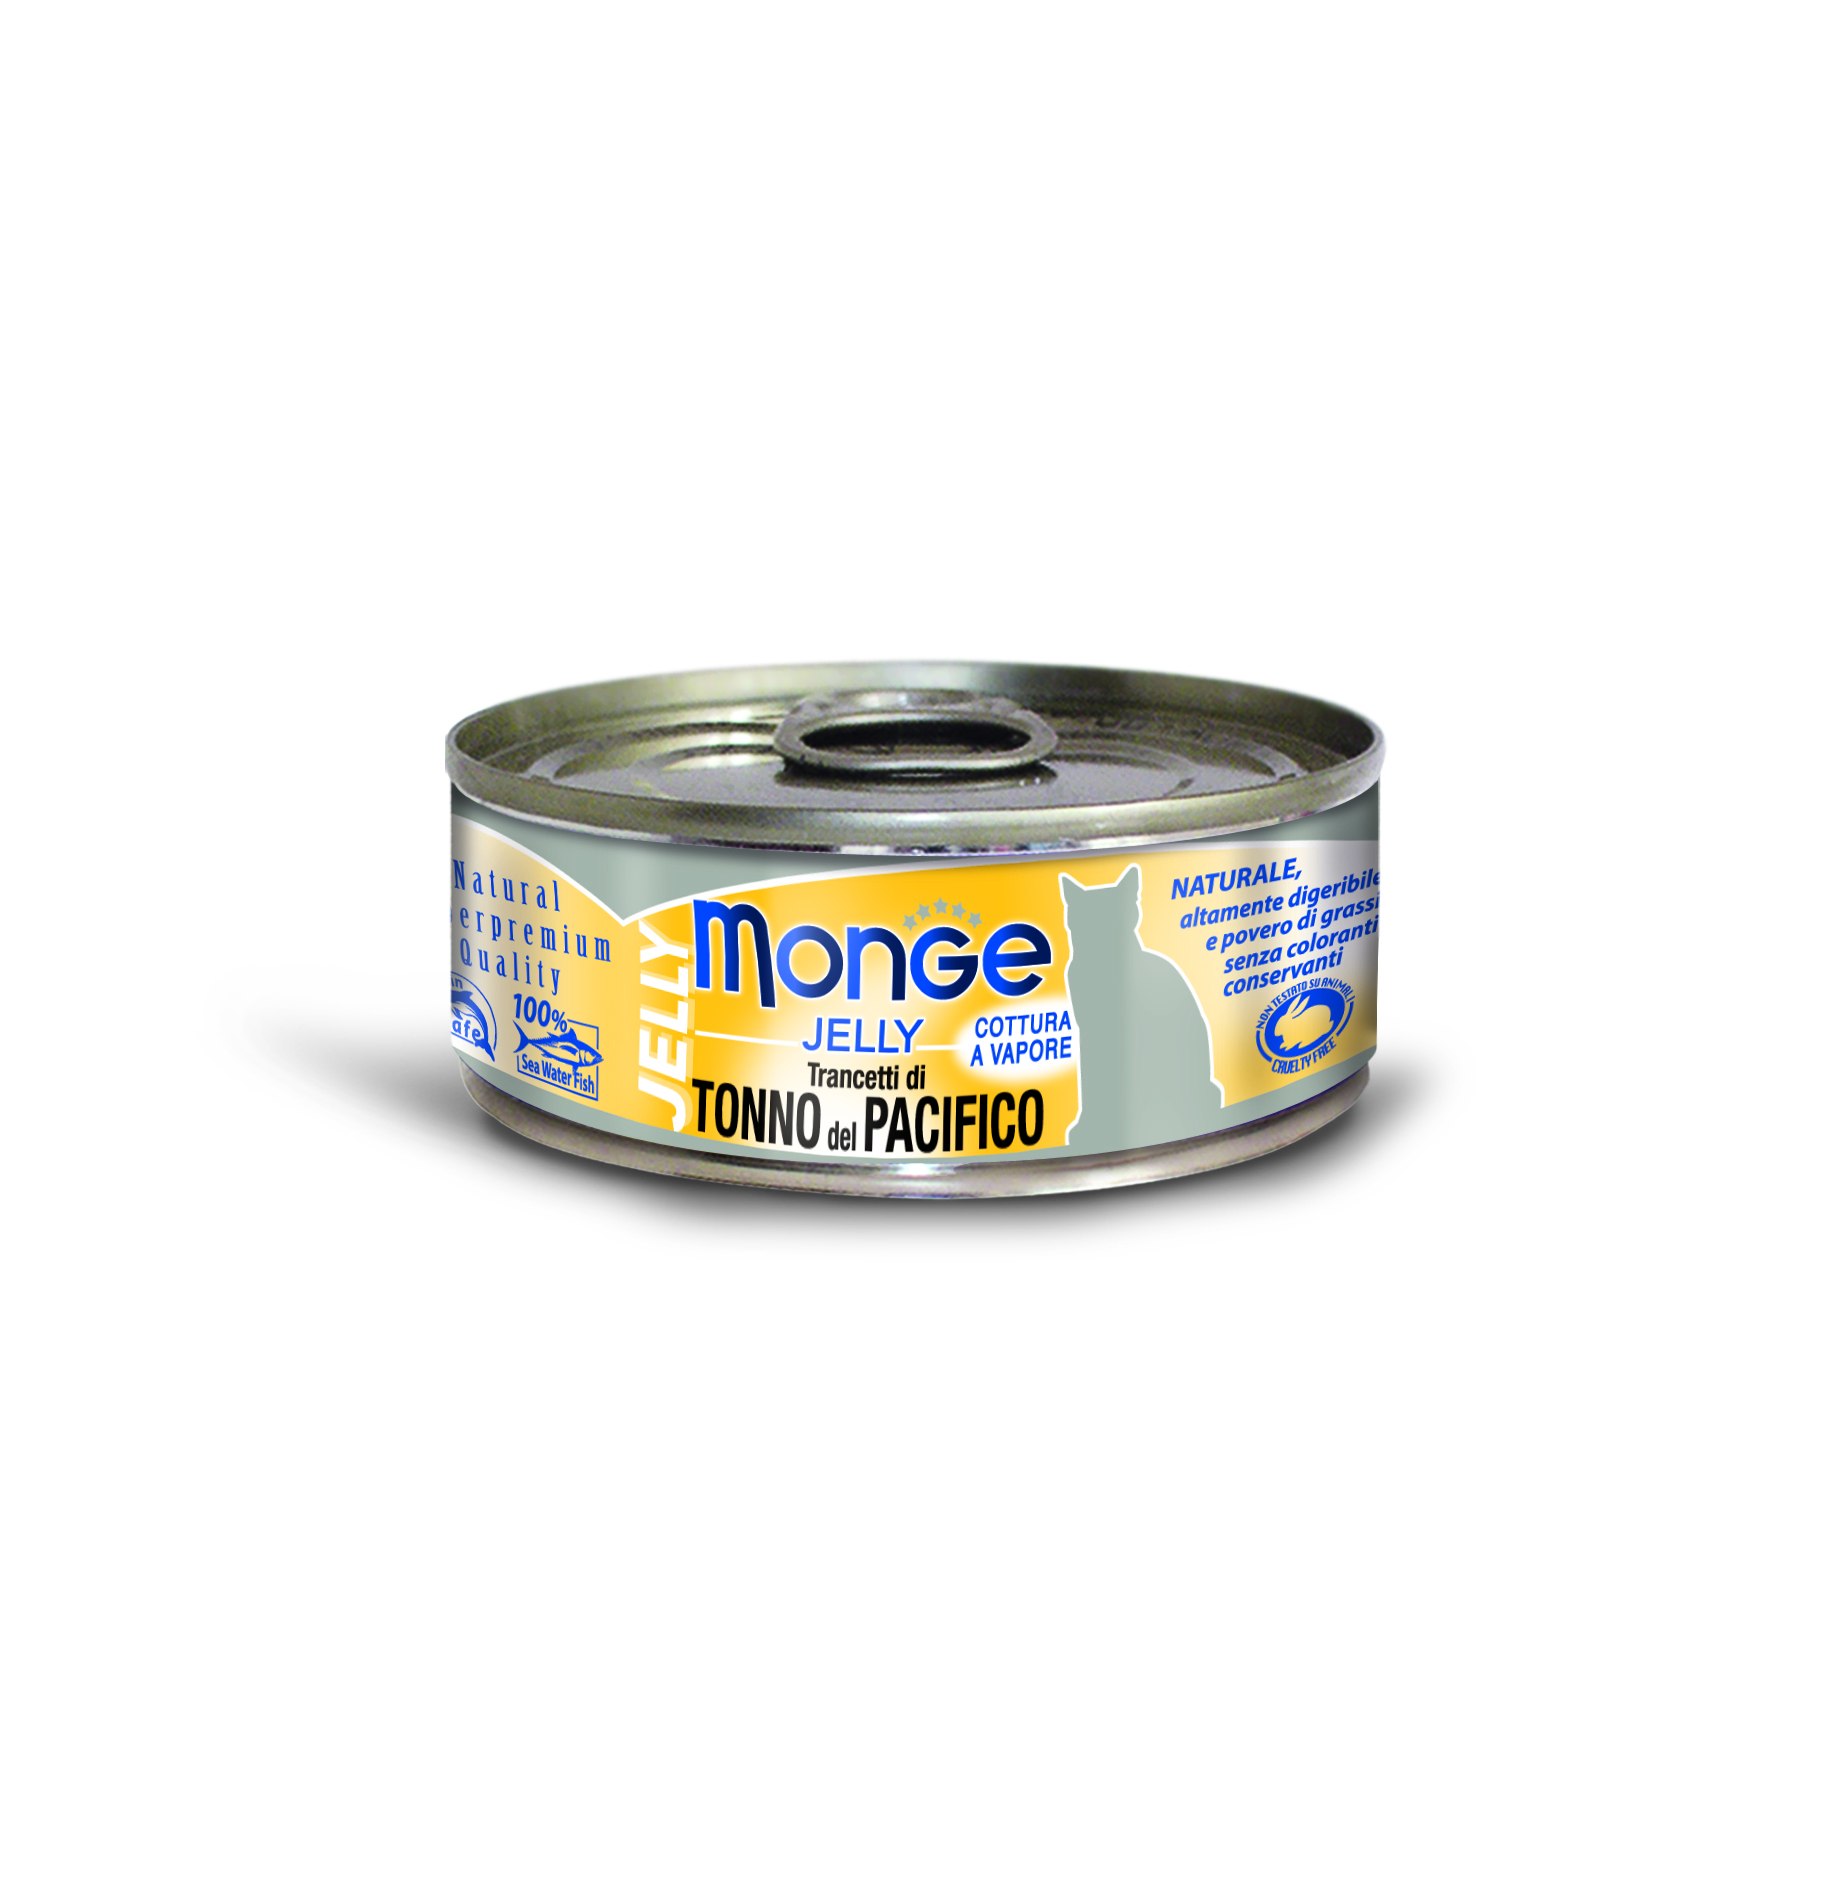 Monge Jelly Yellowfin Tuna Cat Canned Food